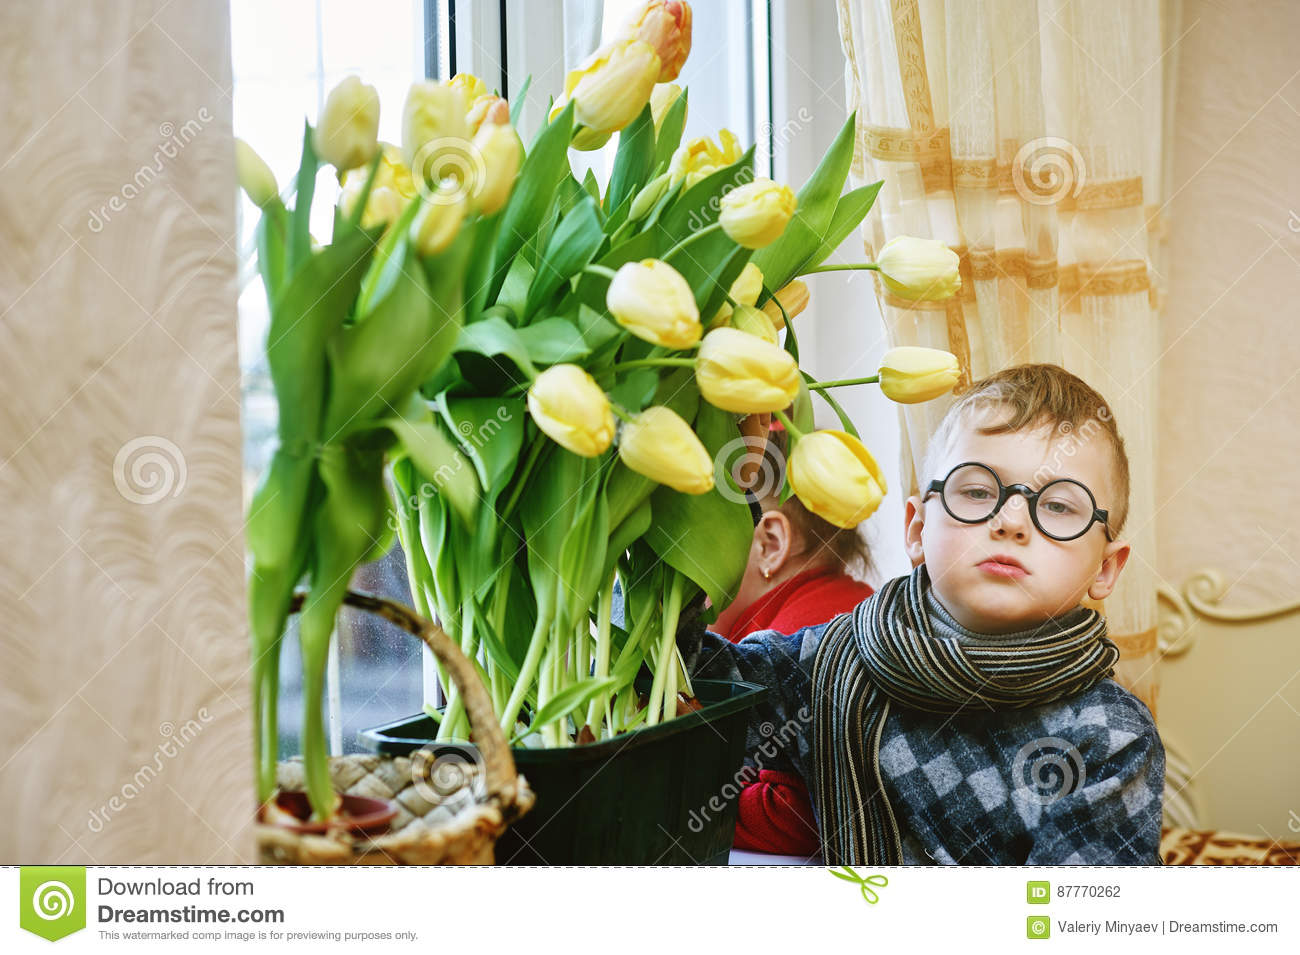 Brother and sister with flowers tulips in the window stock photo download brother and sister with flowers tulips in the window stock photo image of izmirmasajfo